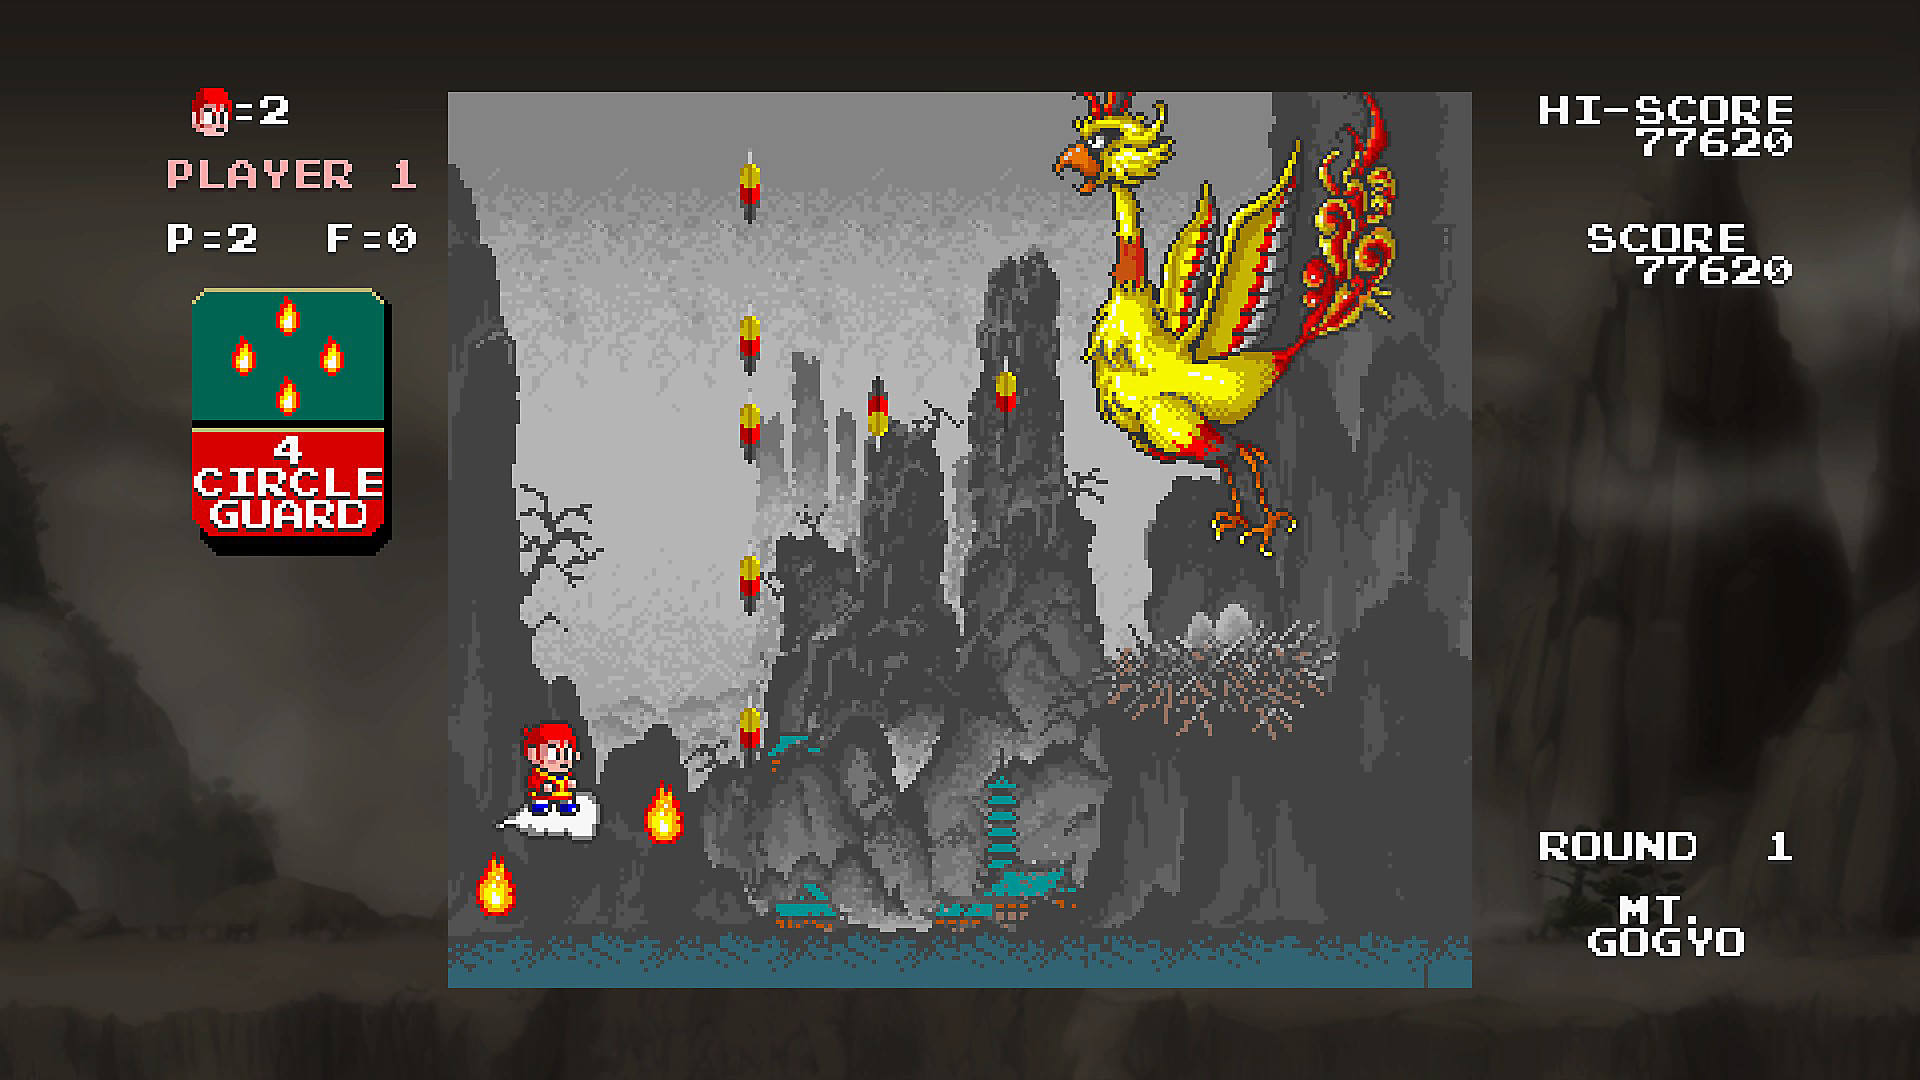 Main character fighting a bird boss